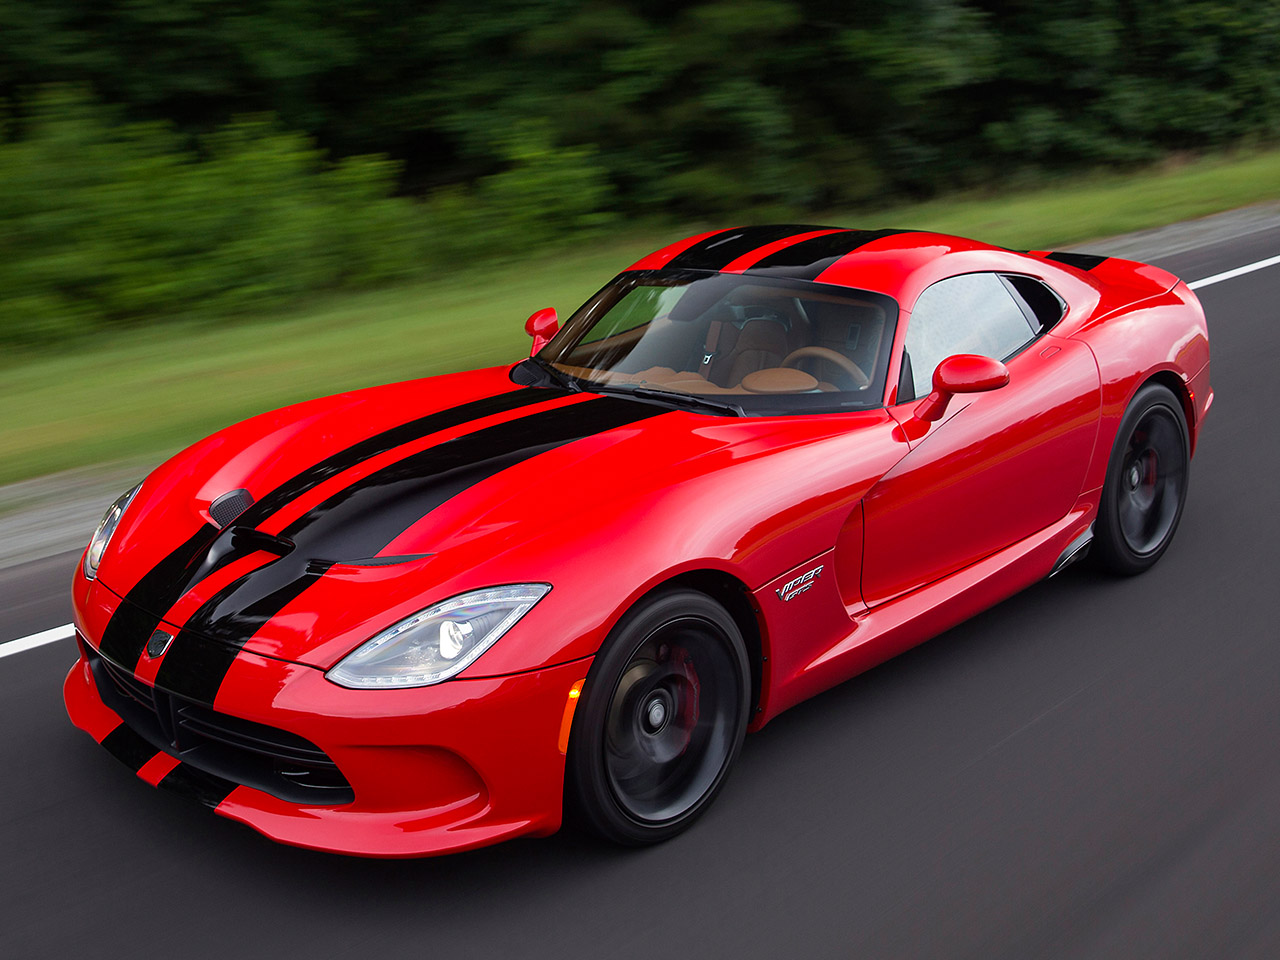 2020 Dodge Viper ACR Performance and New Engine